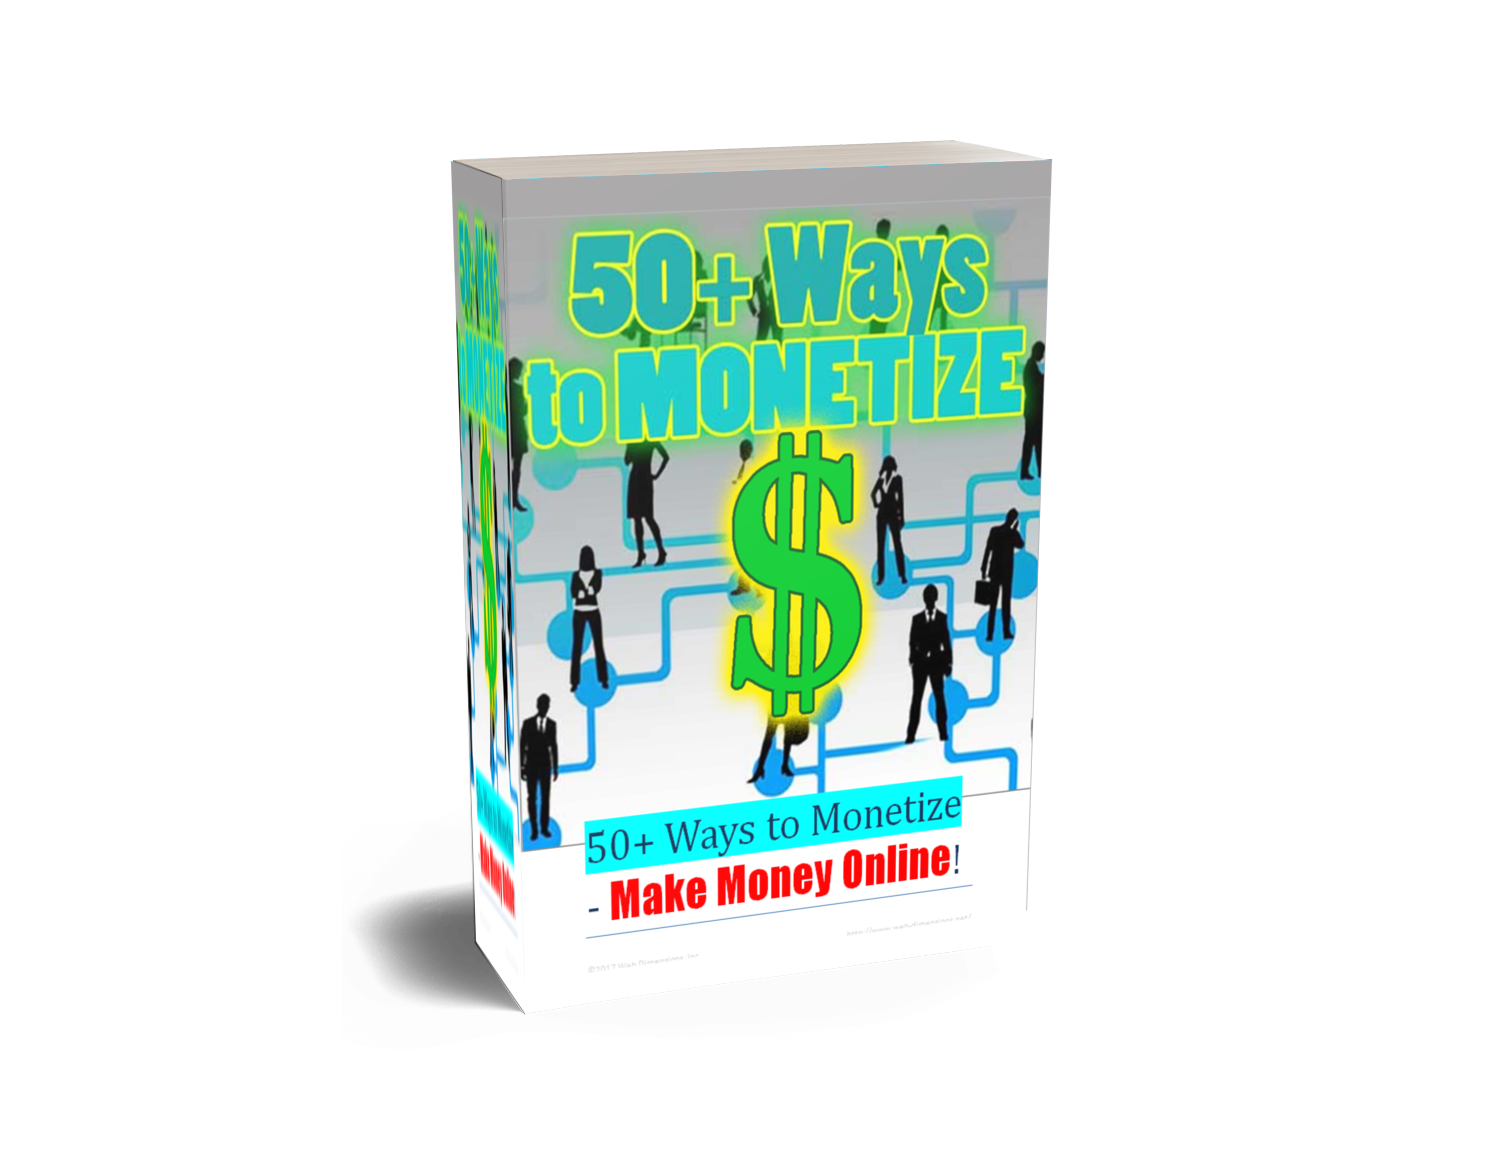 Make money online with our Monetization Cheat Sheet!